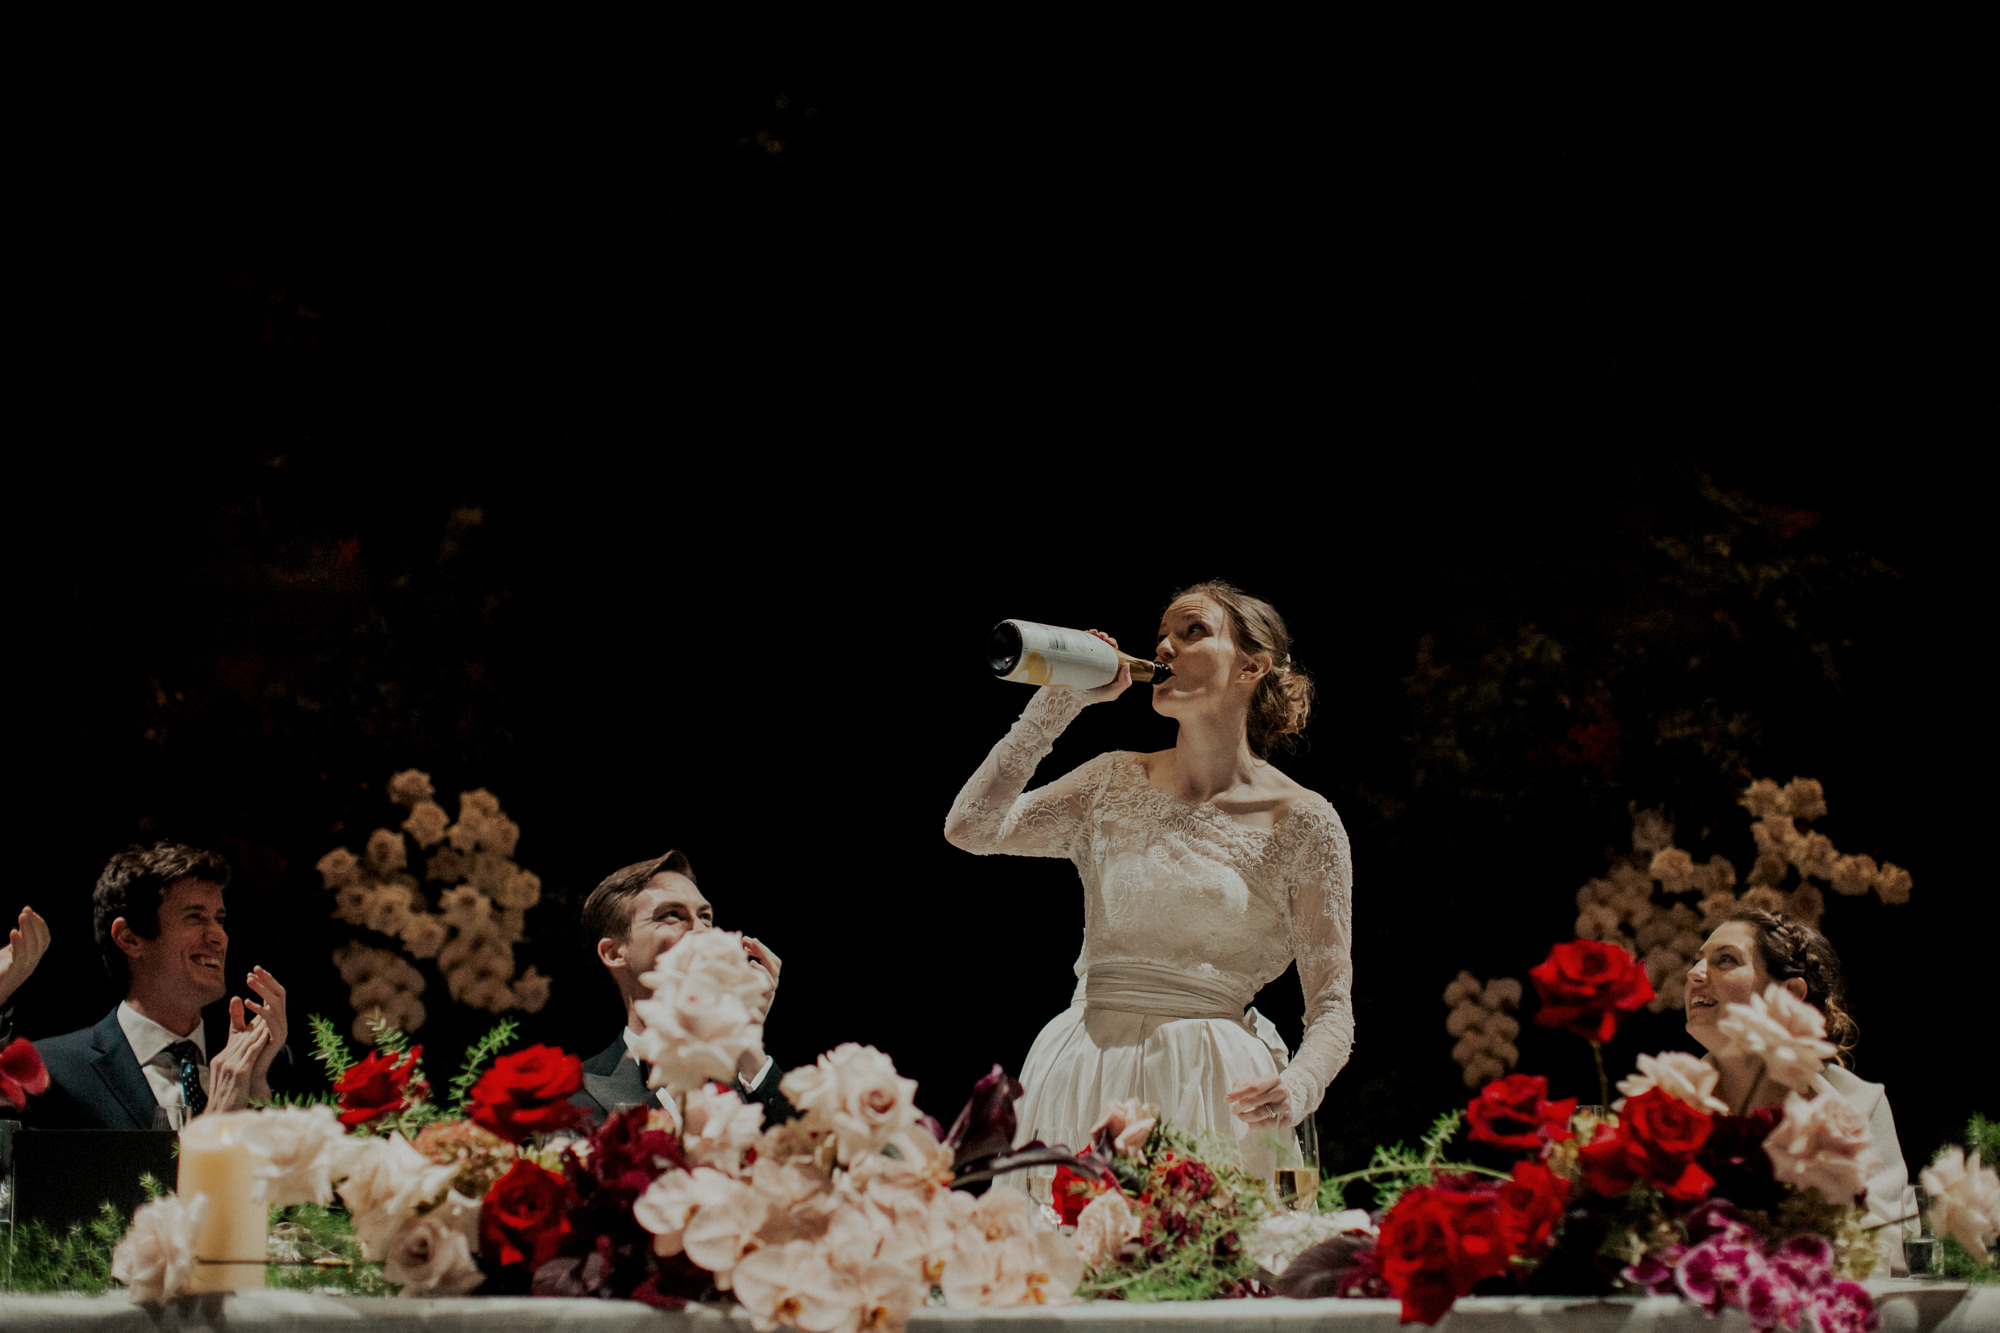 Bride drinking from champagne bottle during toasts, by Dan O'Day